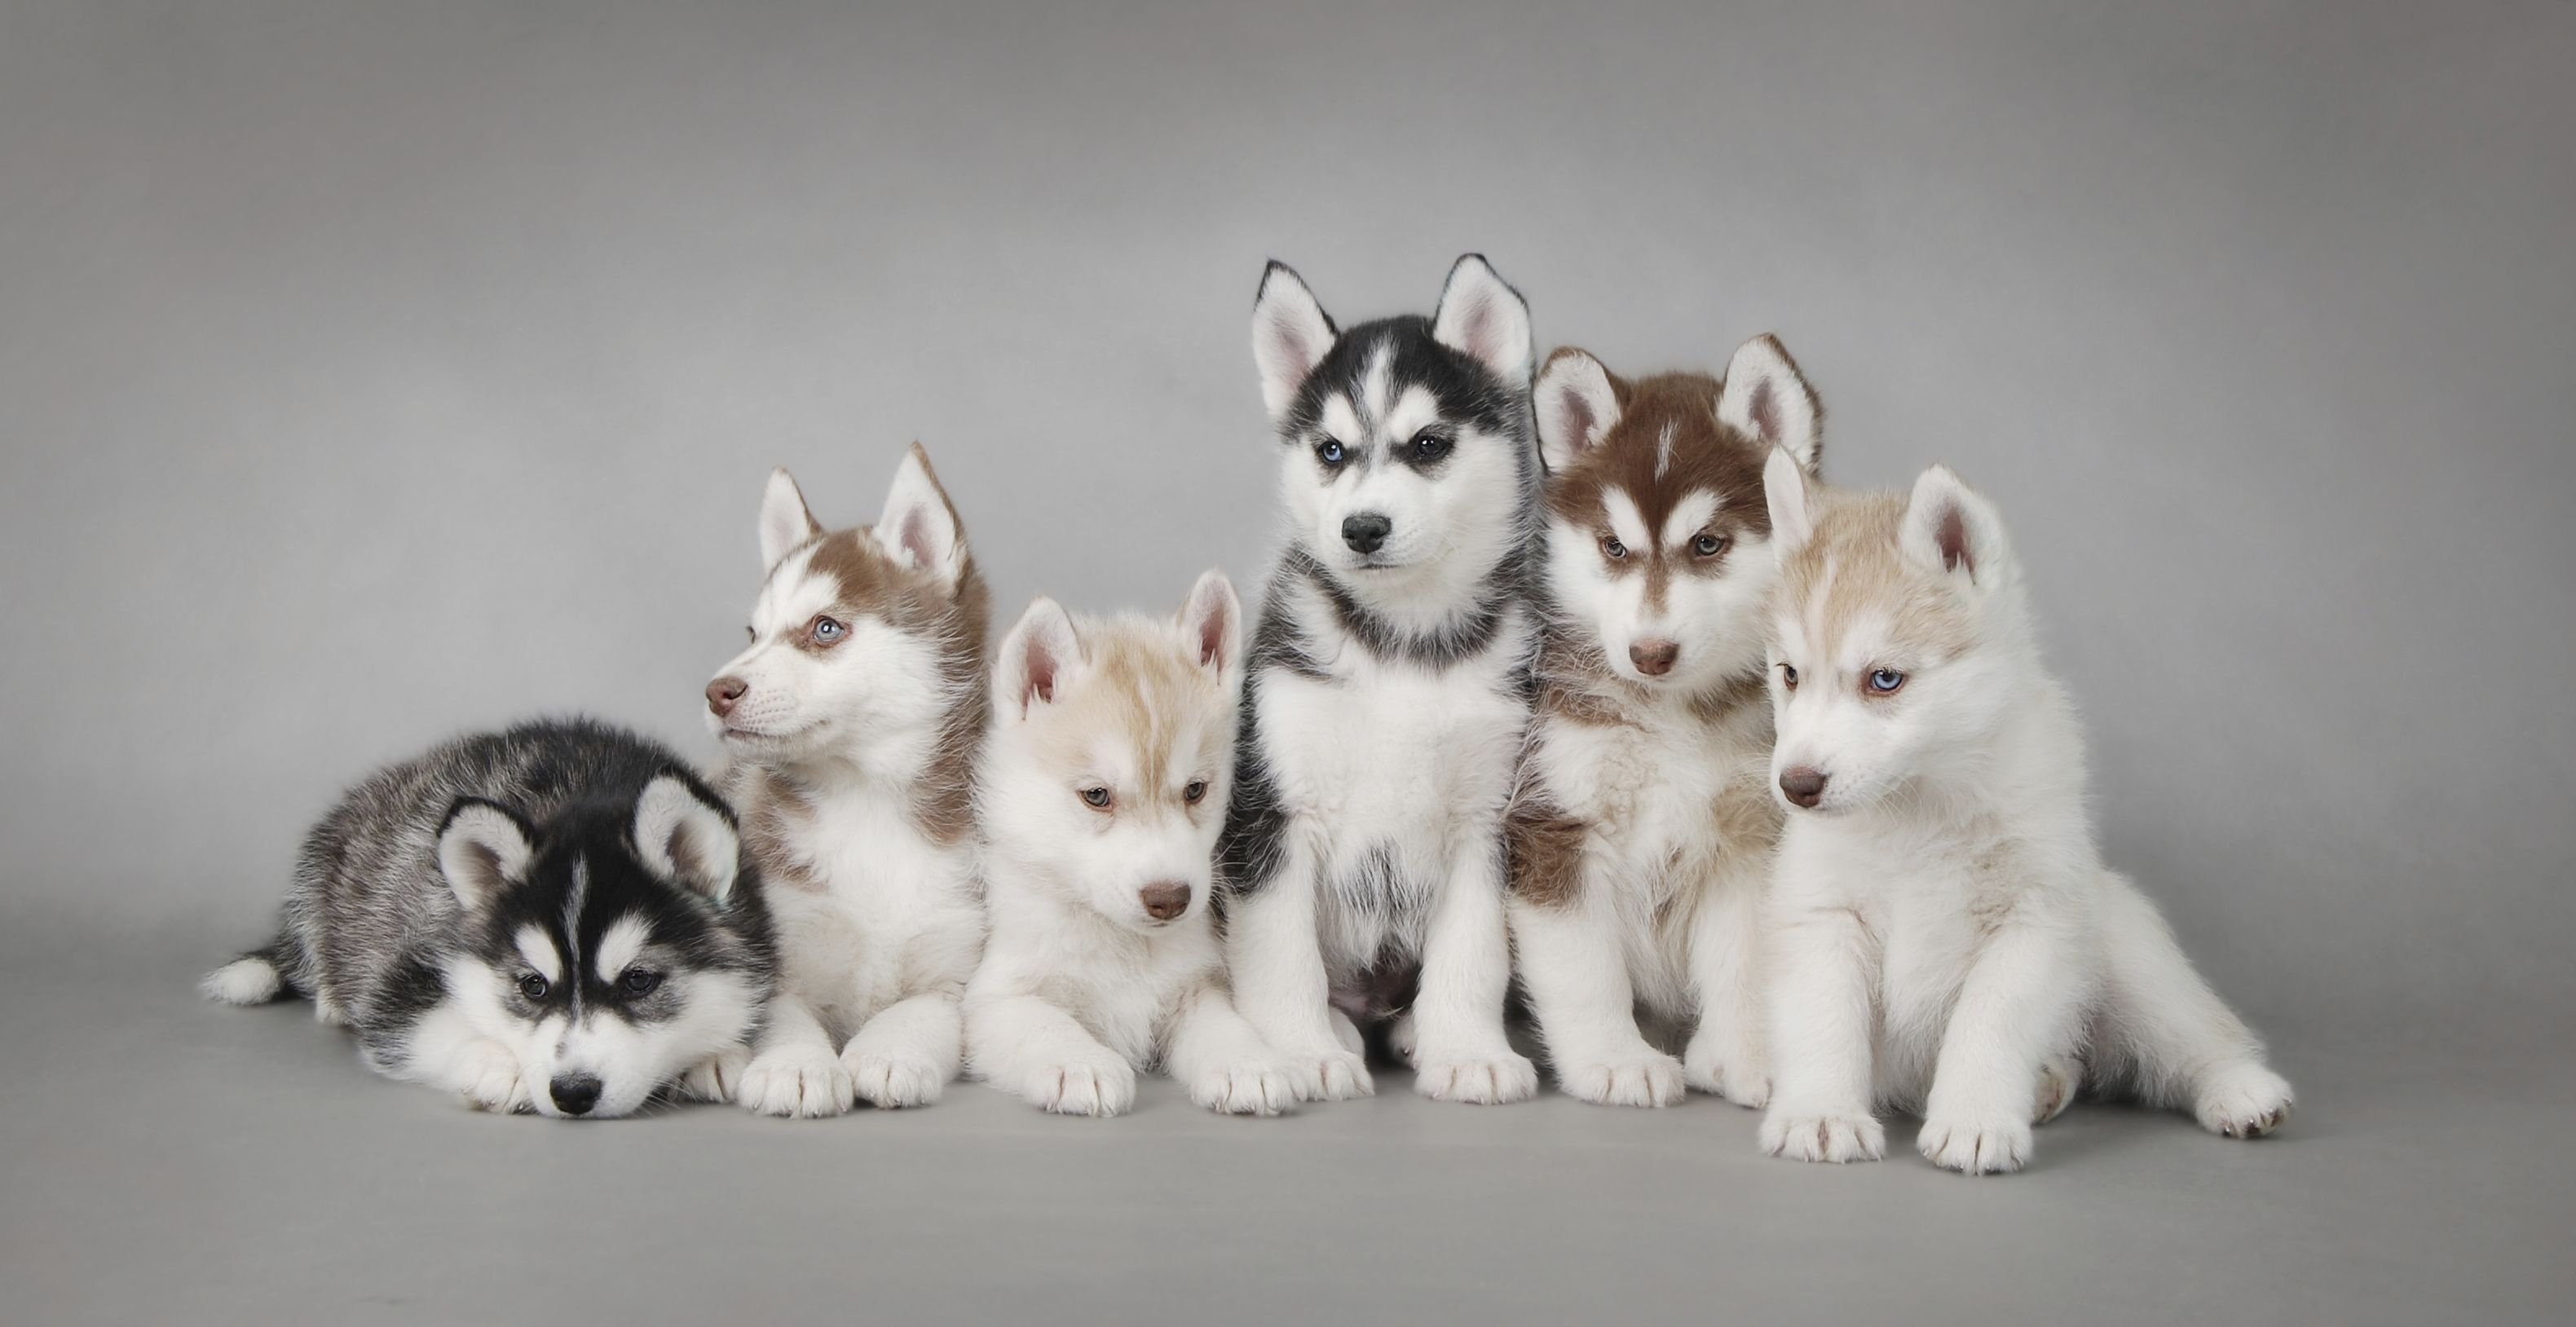 On Average Puppies And Kittens Start Playing With Their